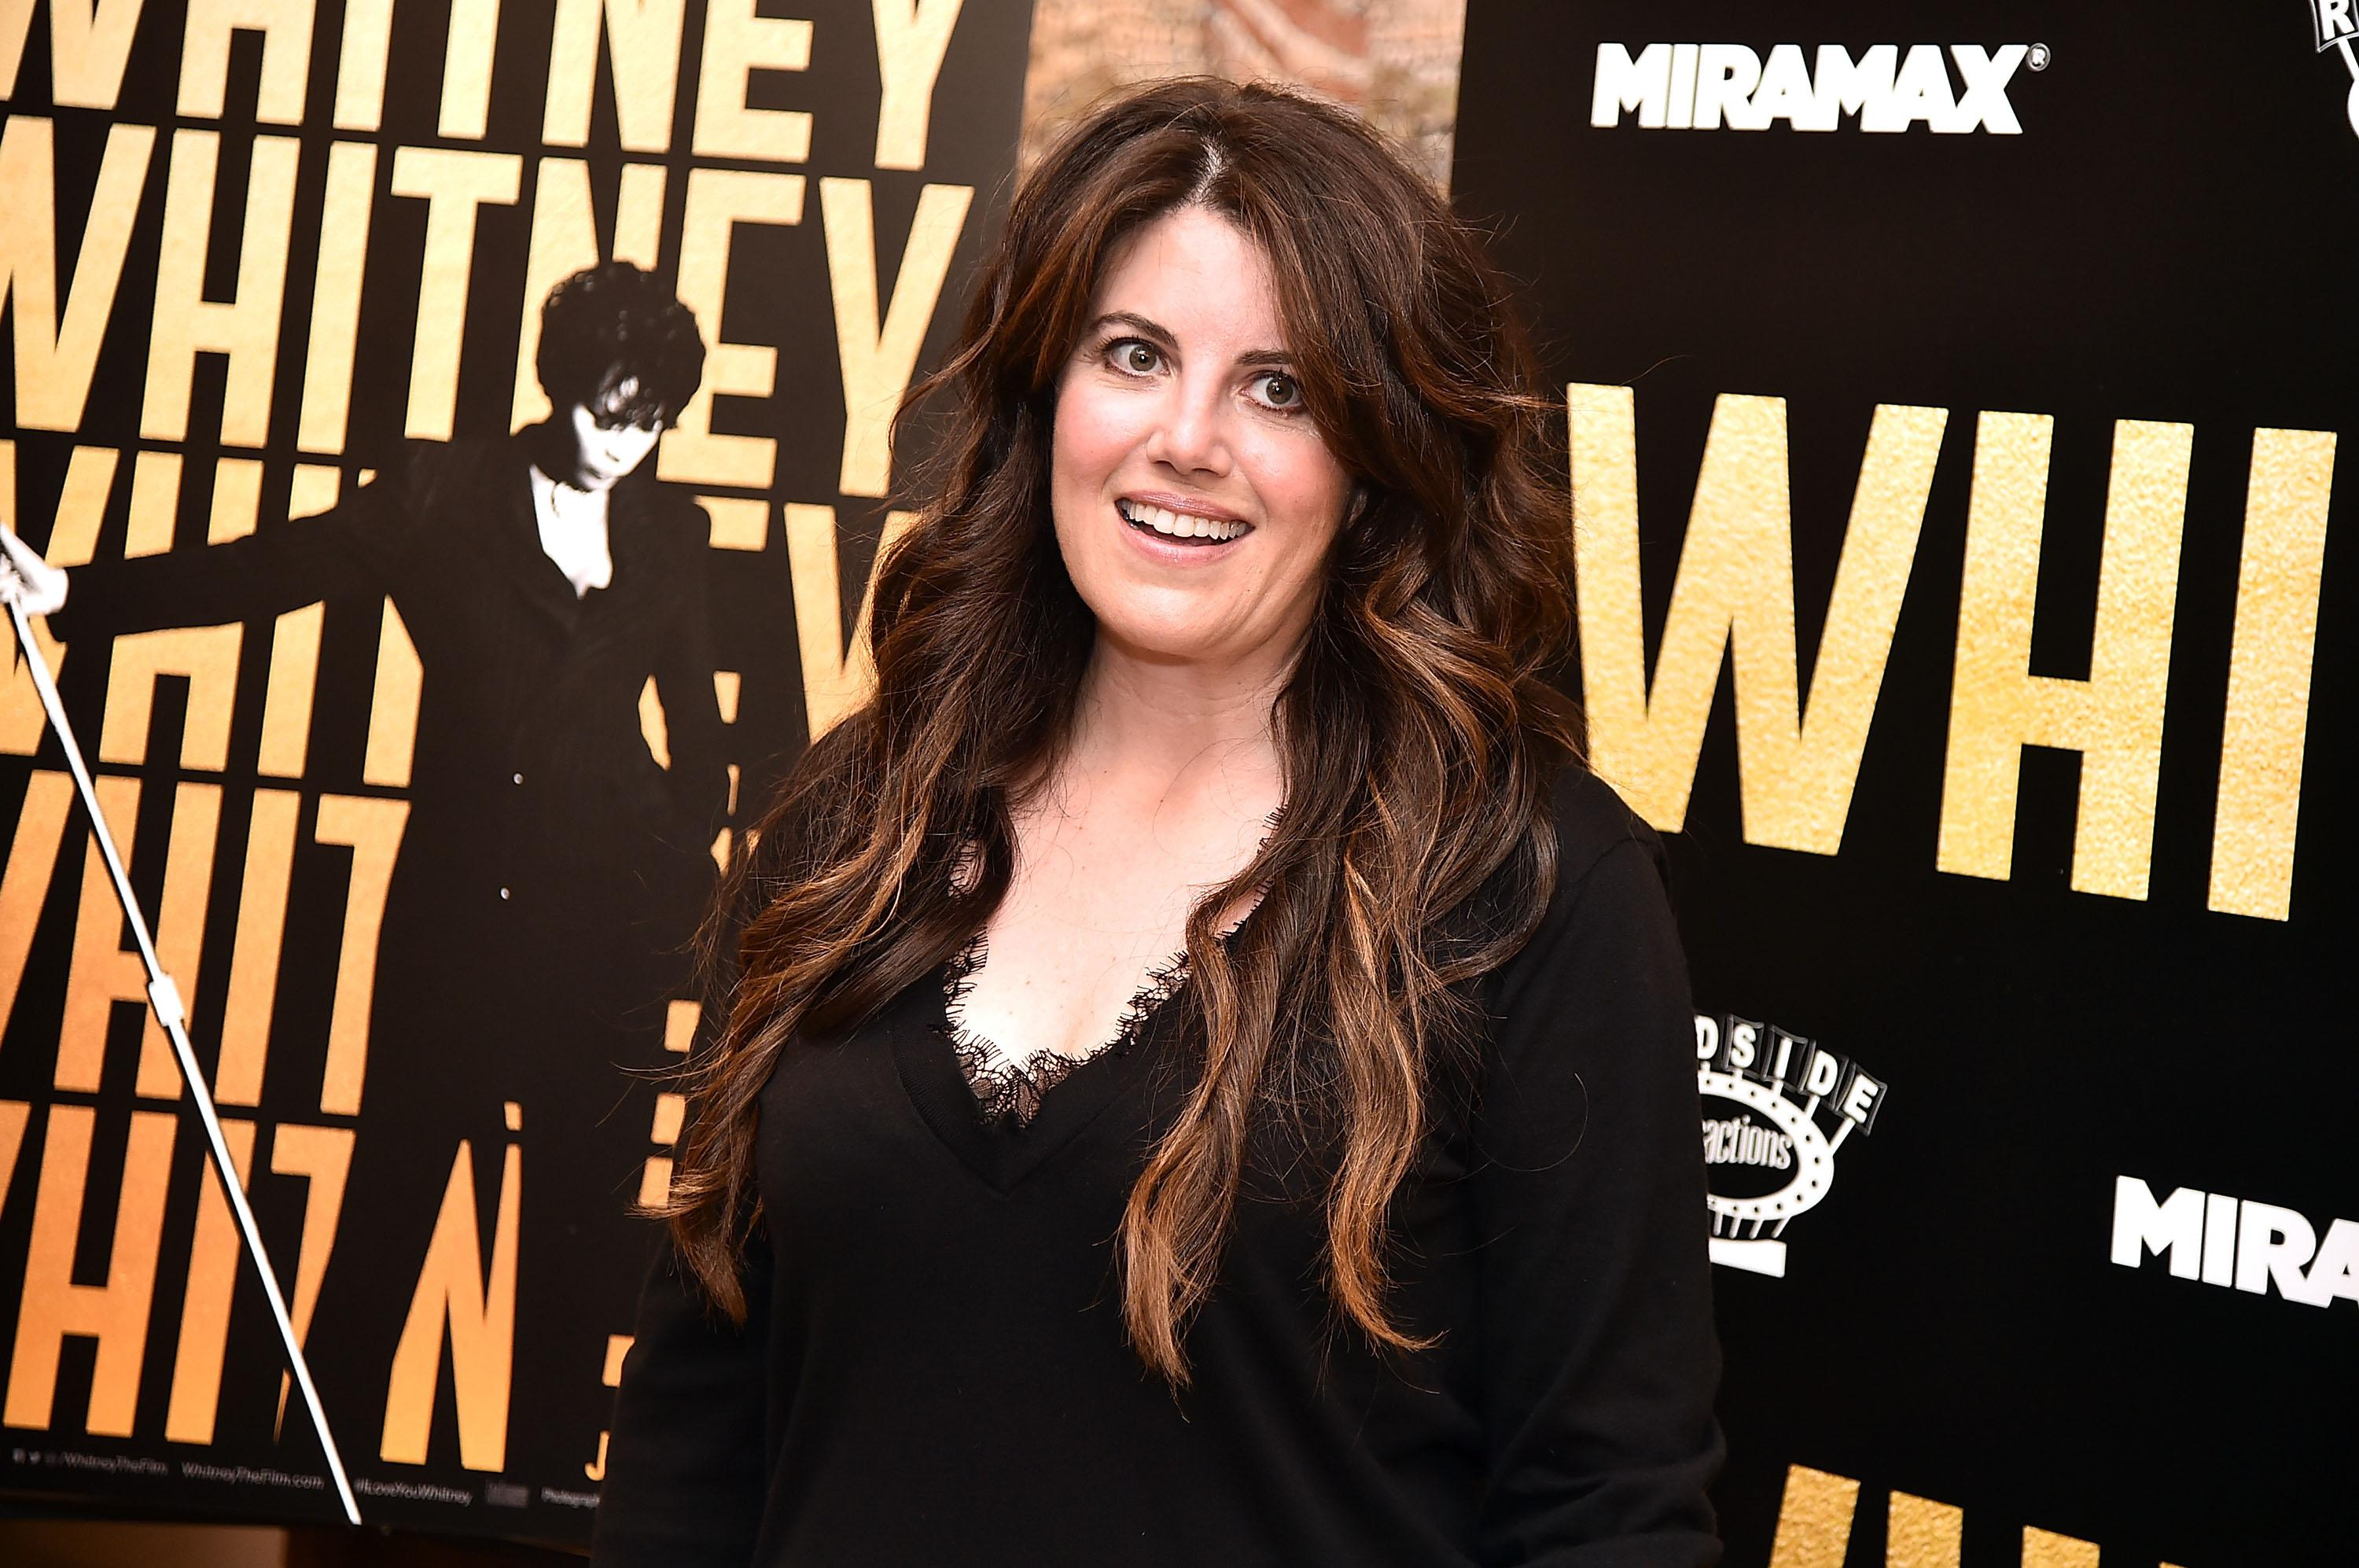 Monica Lewinsky attends the Whitney New York Screening at the Whitby Hotel on June 27, 2018 in New York City.